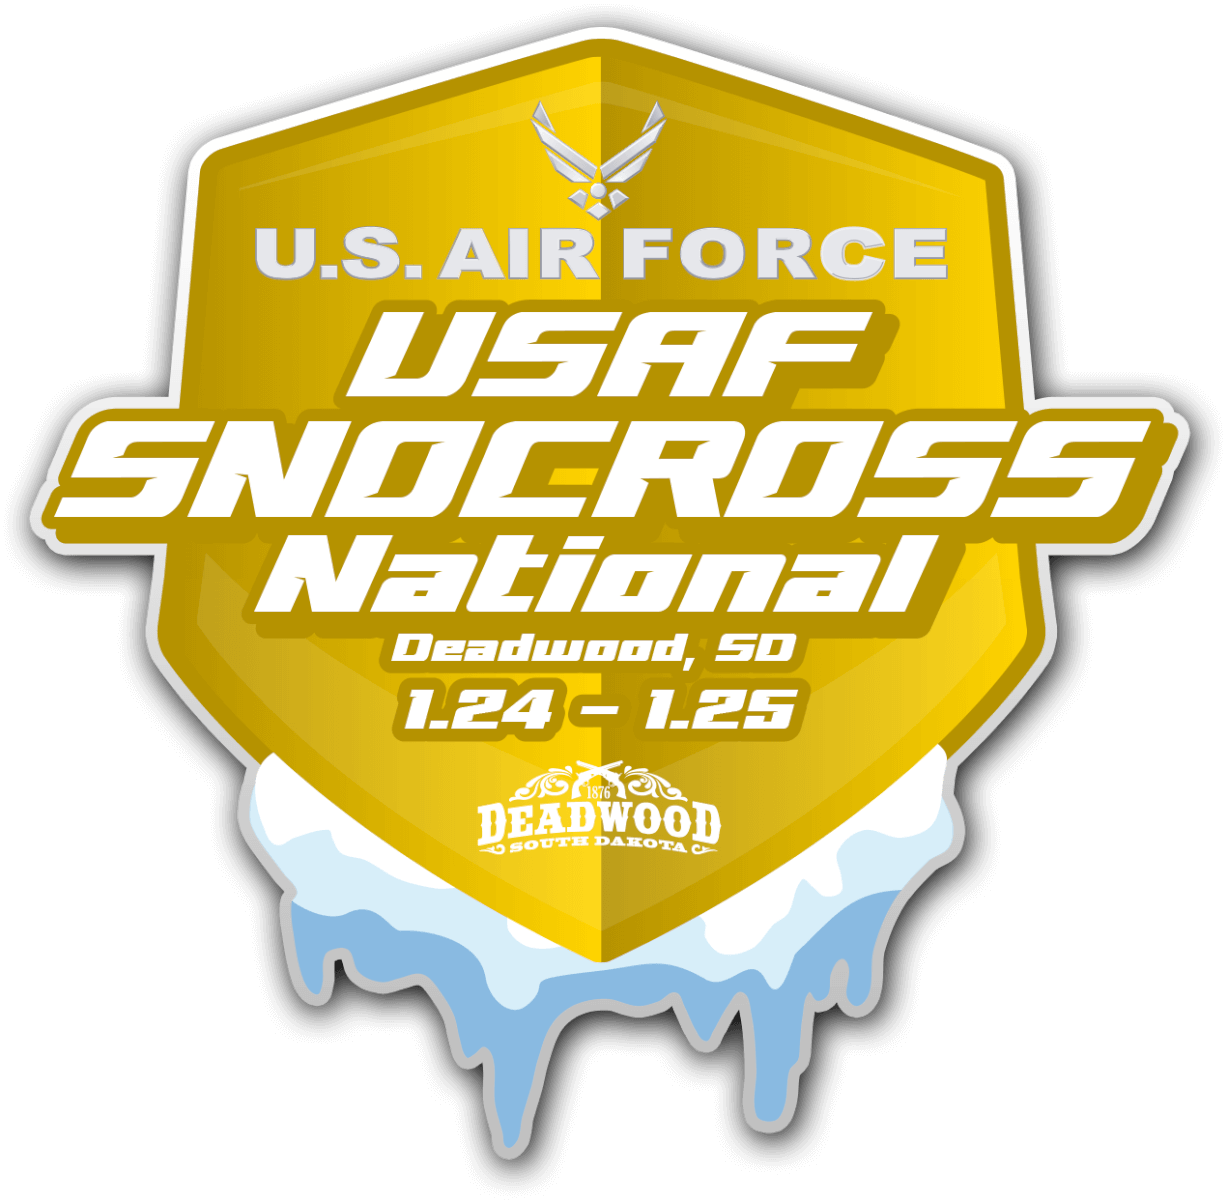 US AIR FORCE DEADWOOD SNOCROSS